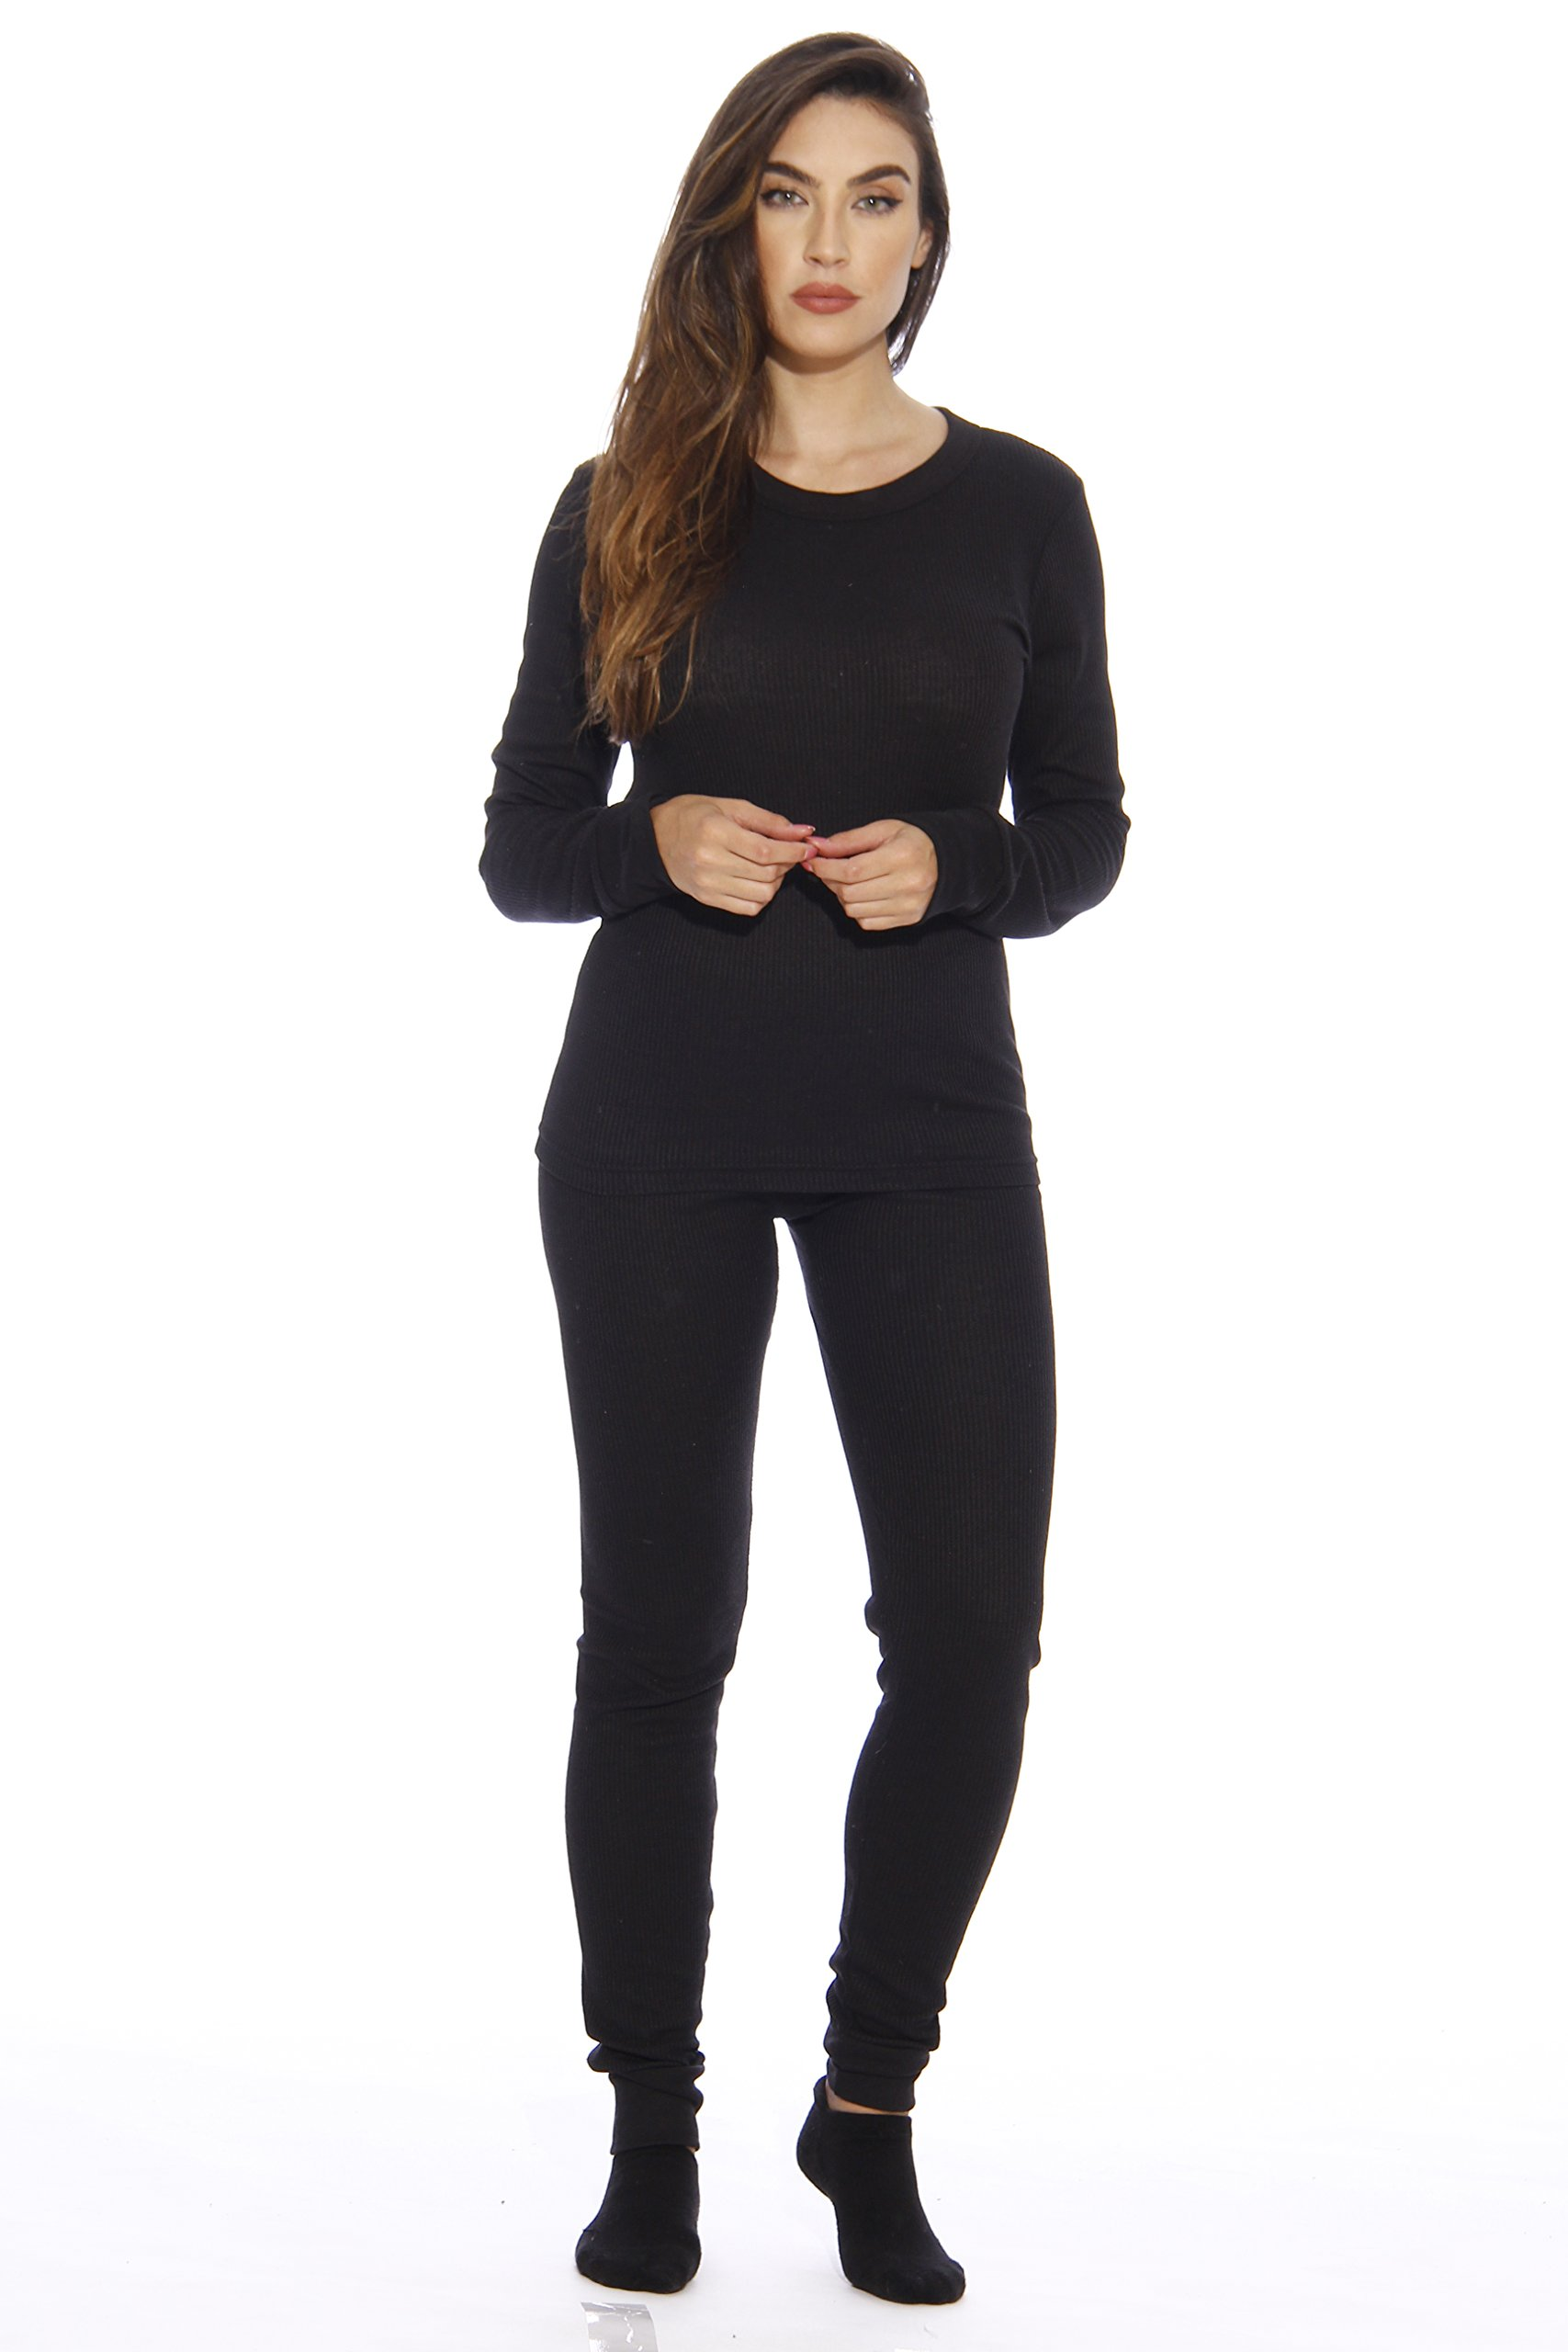 95862-Black-S Just Love Women's Thermal Underwear Set / Base Layer Thermals